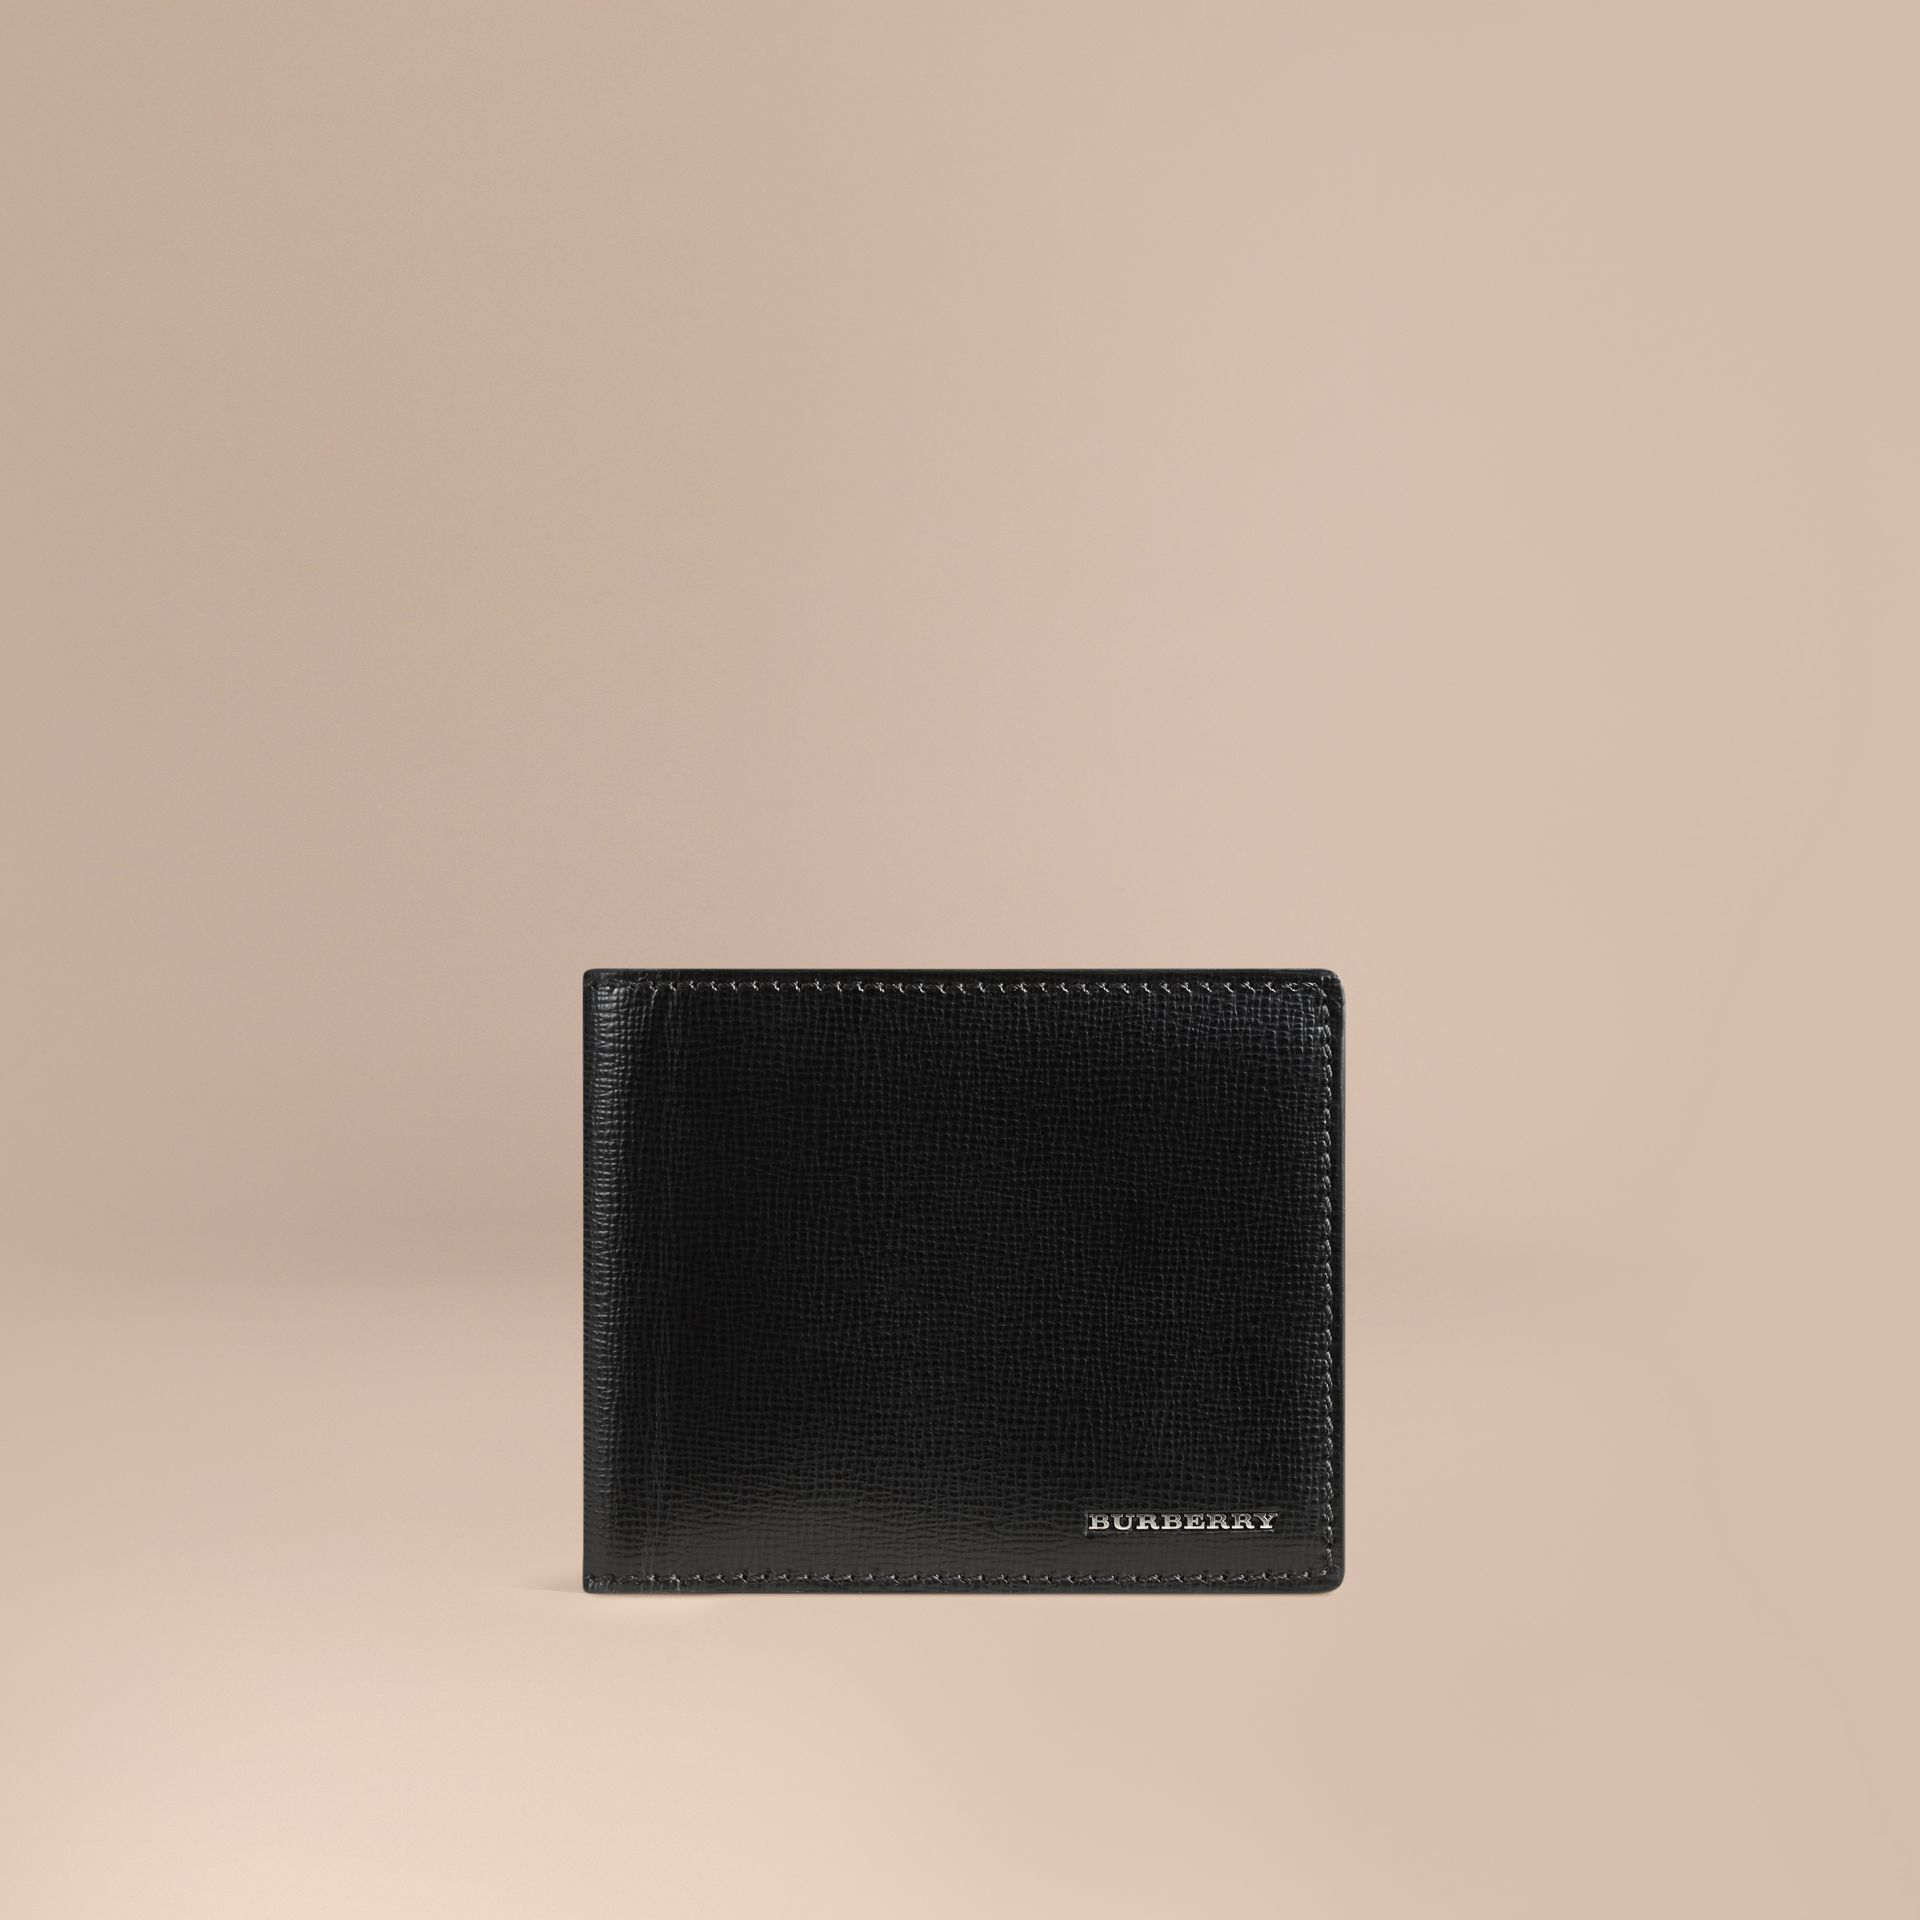 London Leather ID Wallet in Black - Men | Burberry Canada - gallery image 1